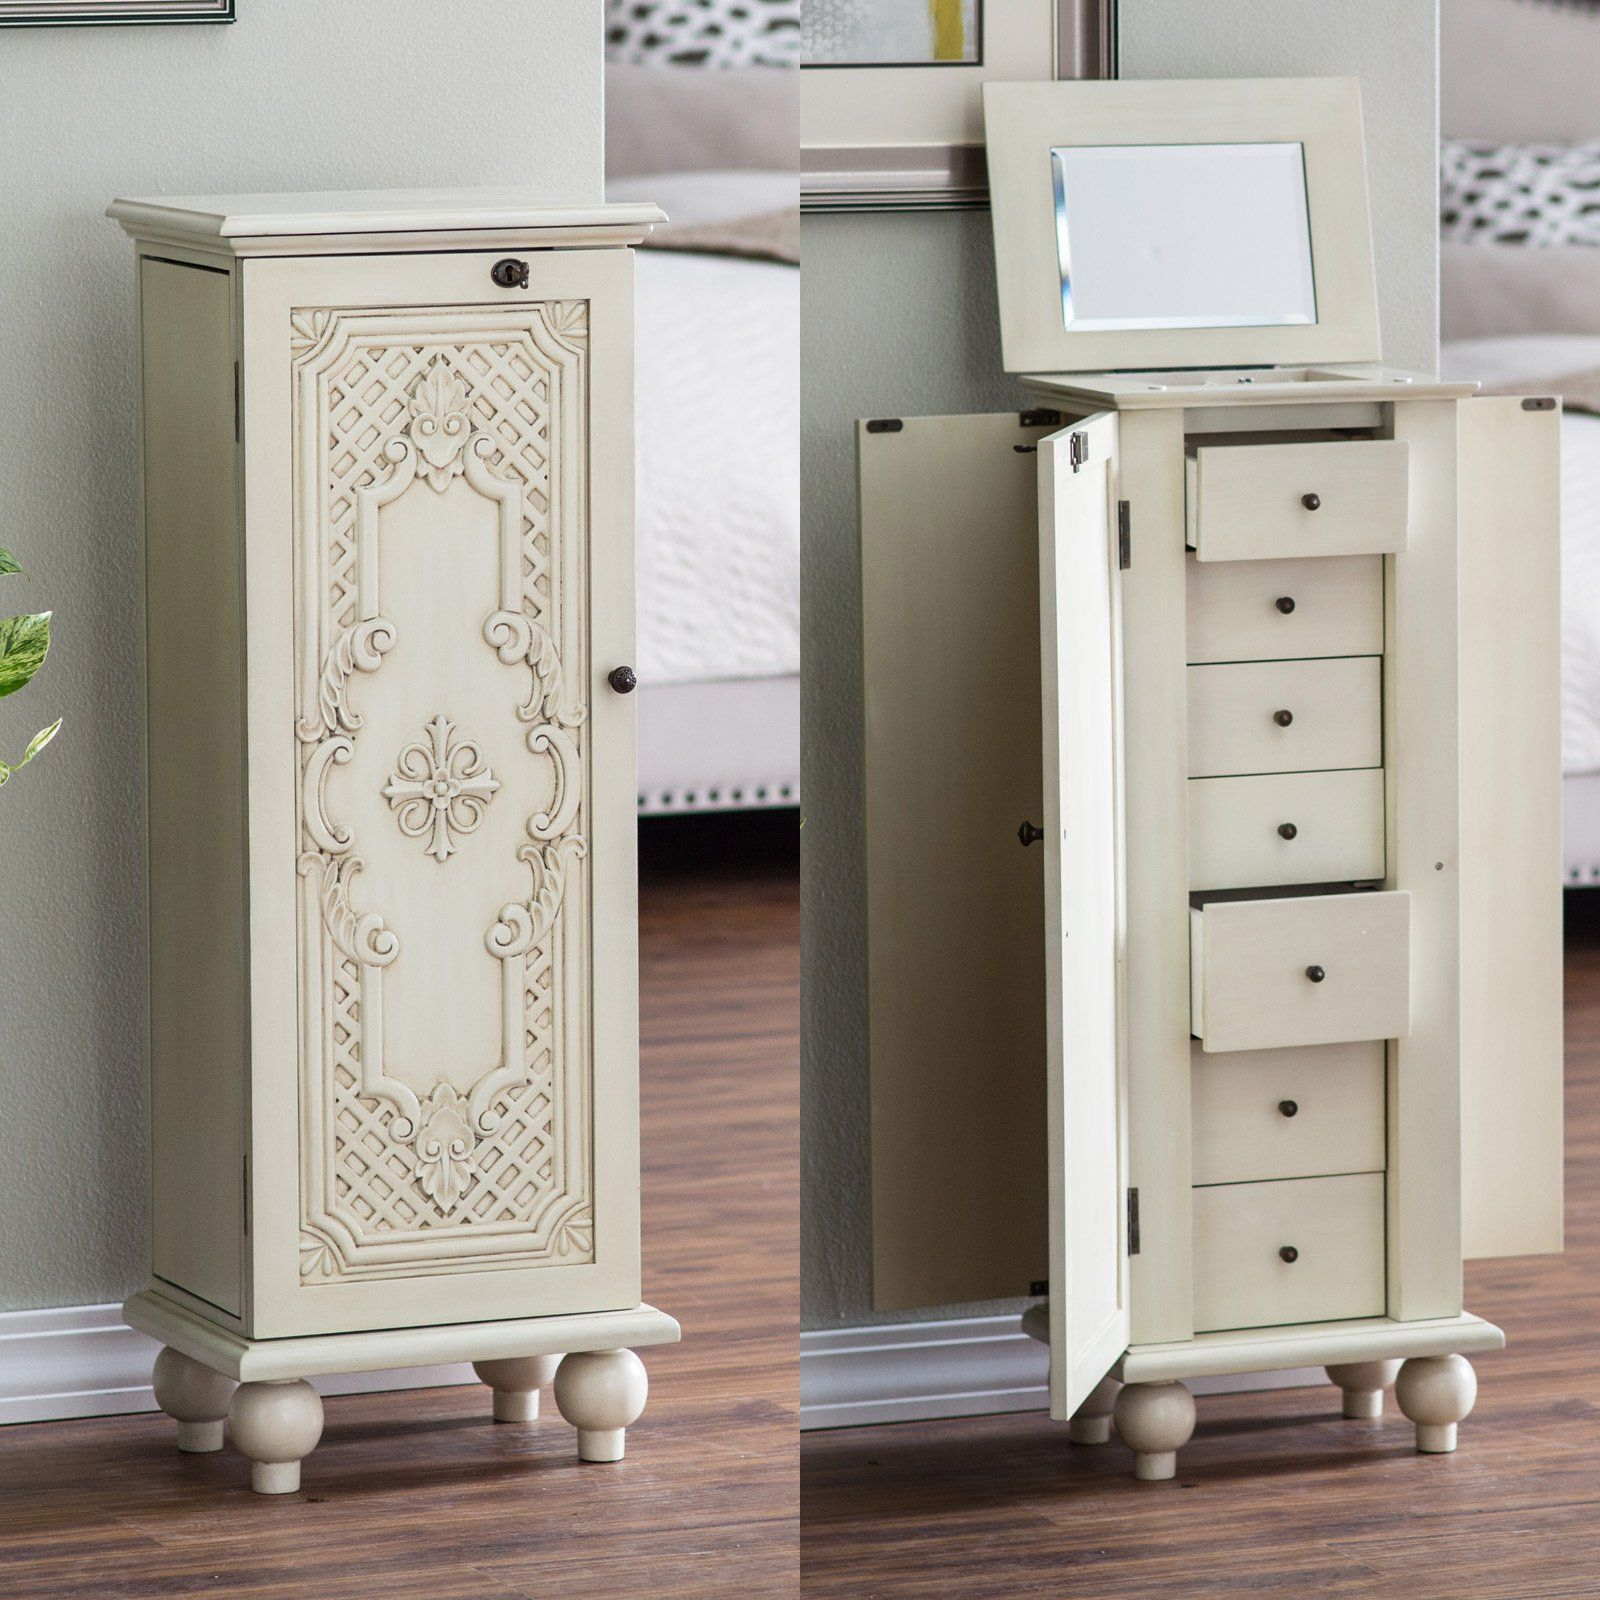 Belham Living Locking Ornate Door Jewelry Armoire from hayneedle